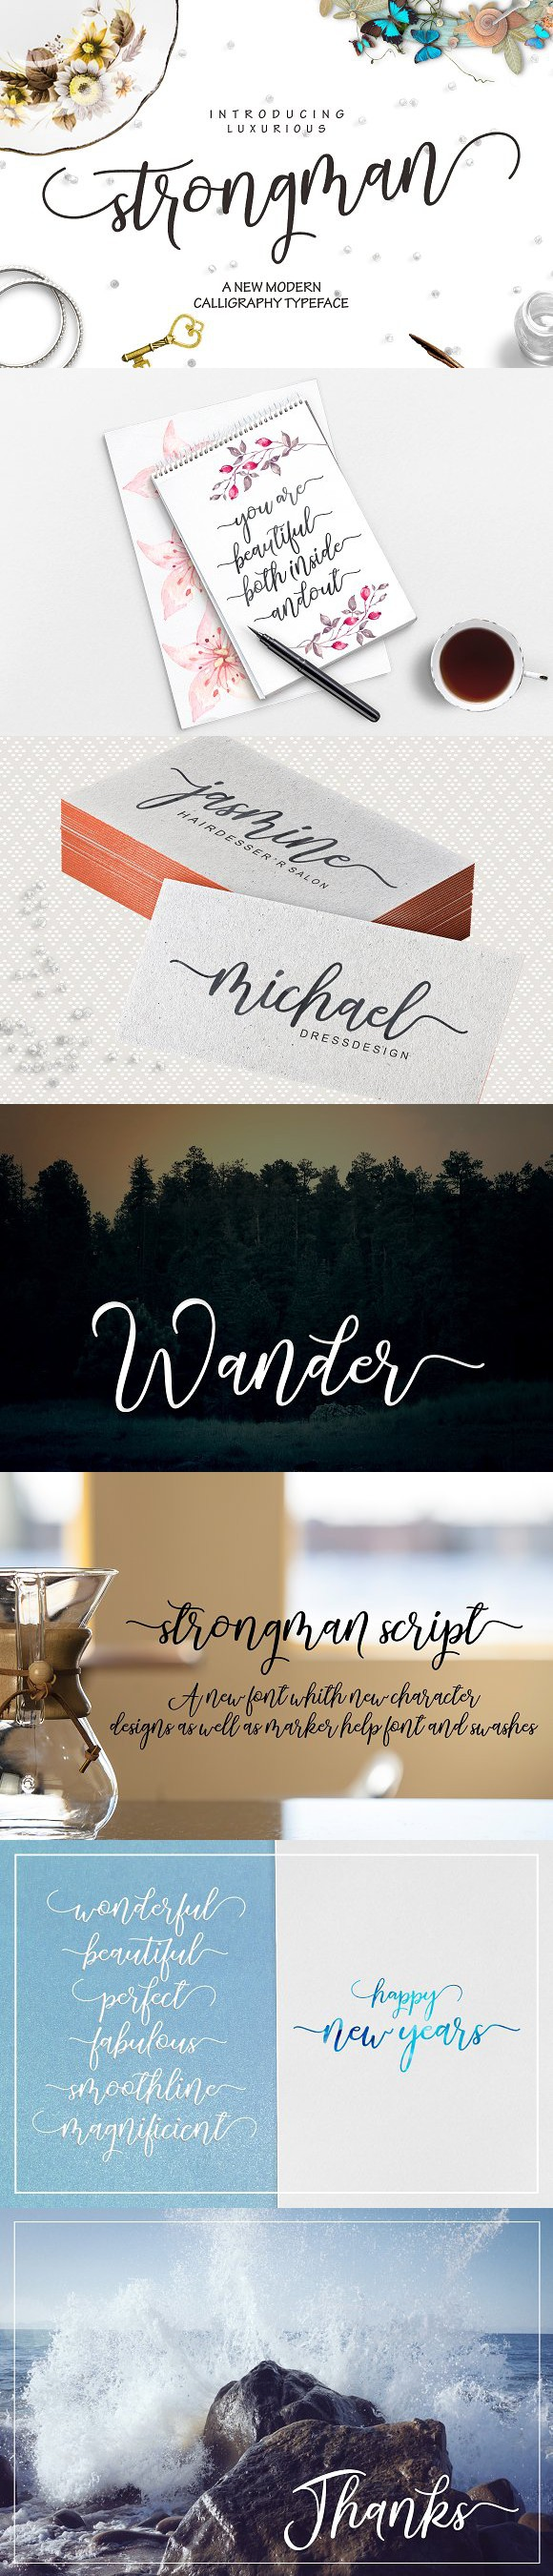 Strongman Script (With images) Wedding fonts, Western